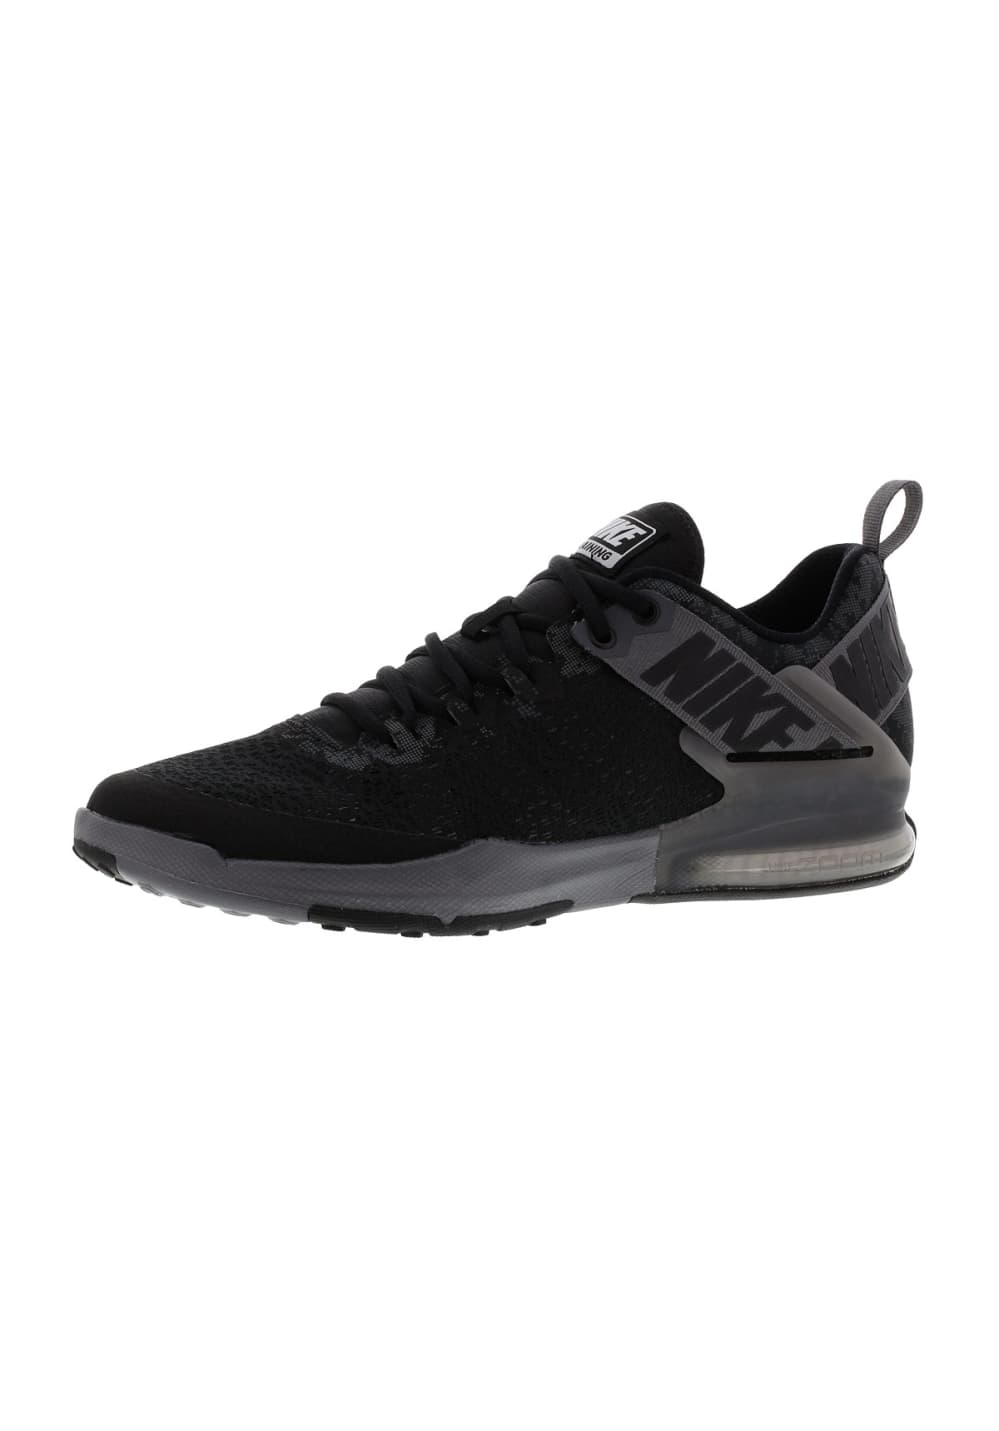 e1bbdc8eaff5a Next. -50%. This product is currently out of stock. Nike. Zoom Domination  Tr 2 - Fitness shoes for Men